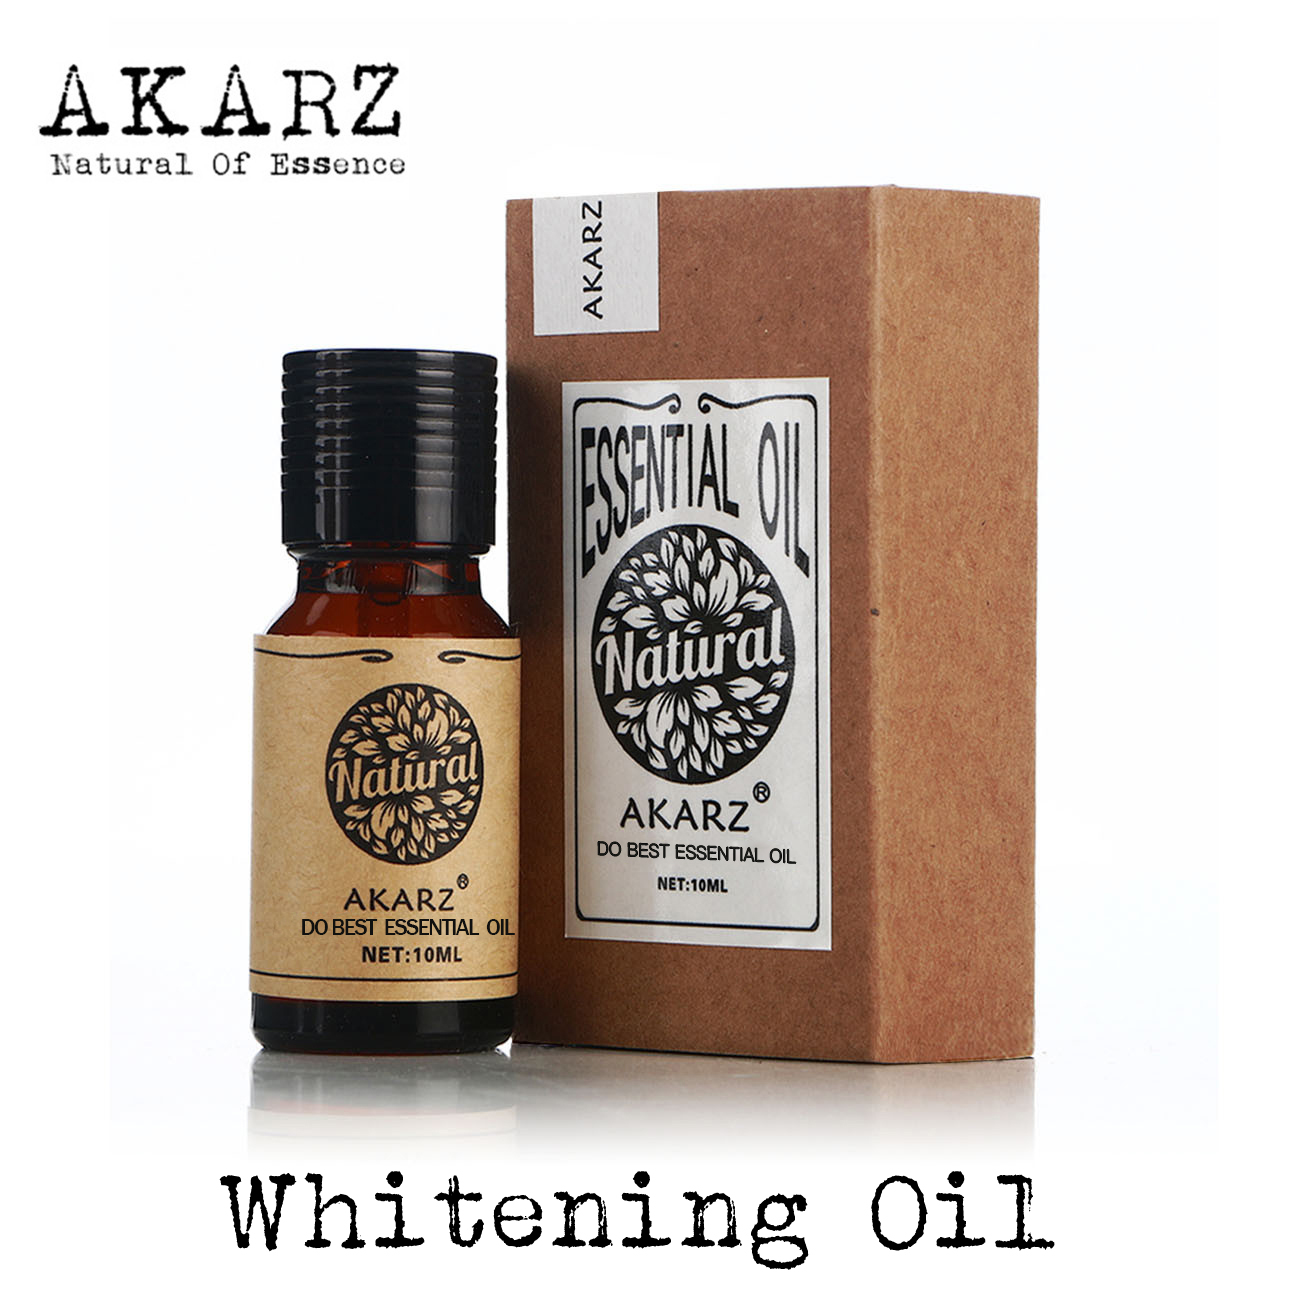 AKARZ Famous brand natural whitening face spot remover essential oil for brighten skin whitening oil facial care essential oils essential oils kingdom compound essential oil 30ml decompression skin care sleeping relieve stress magic oil massage oil